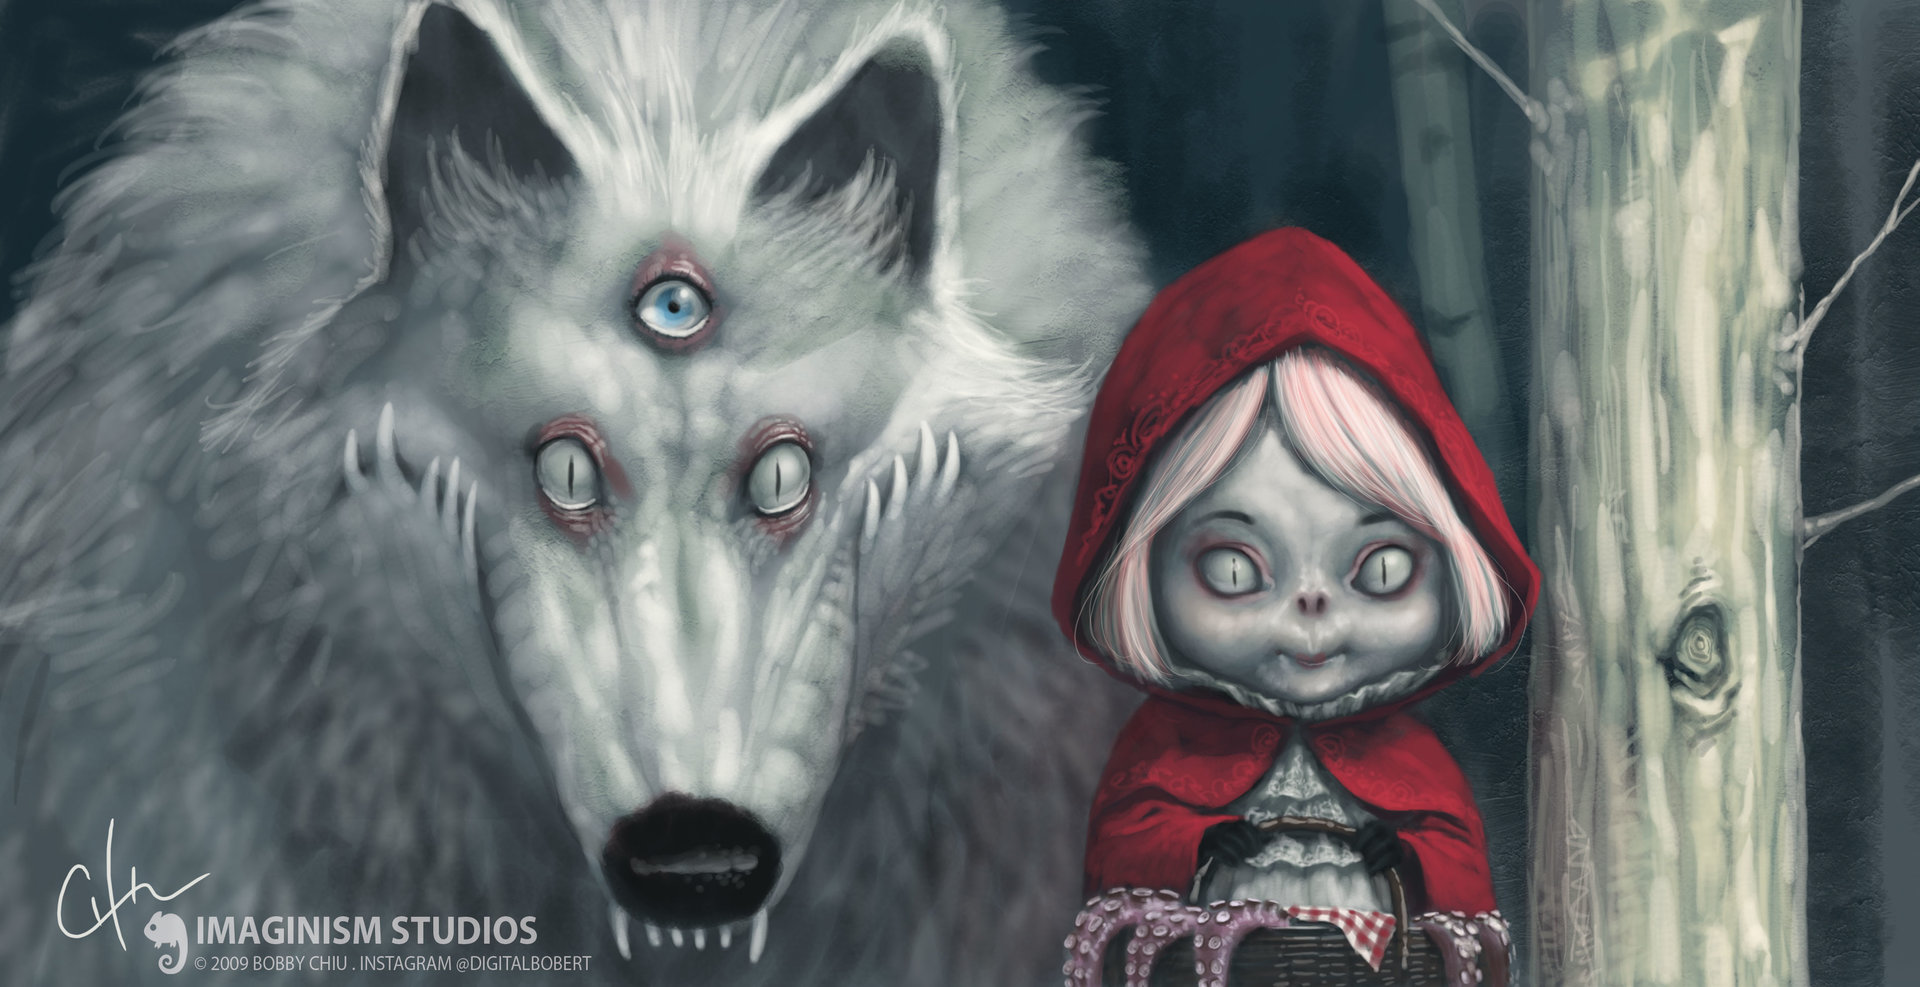 Bobby chiu red riding hood